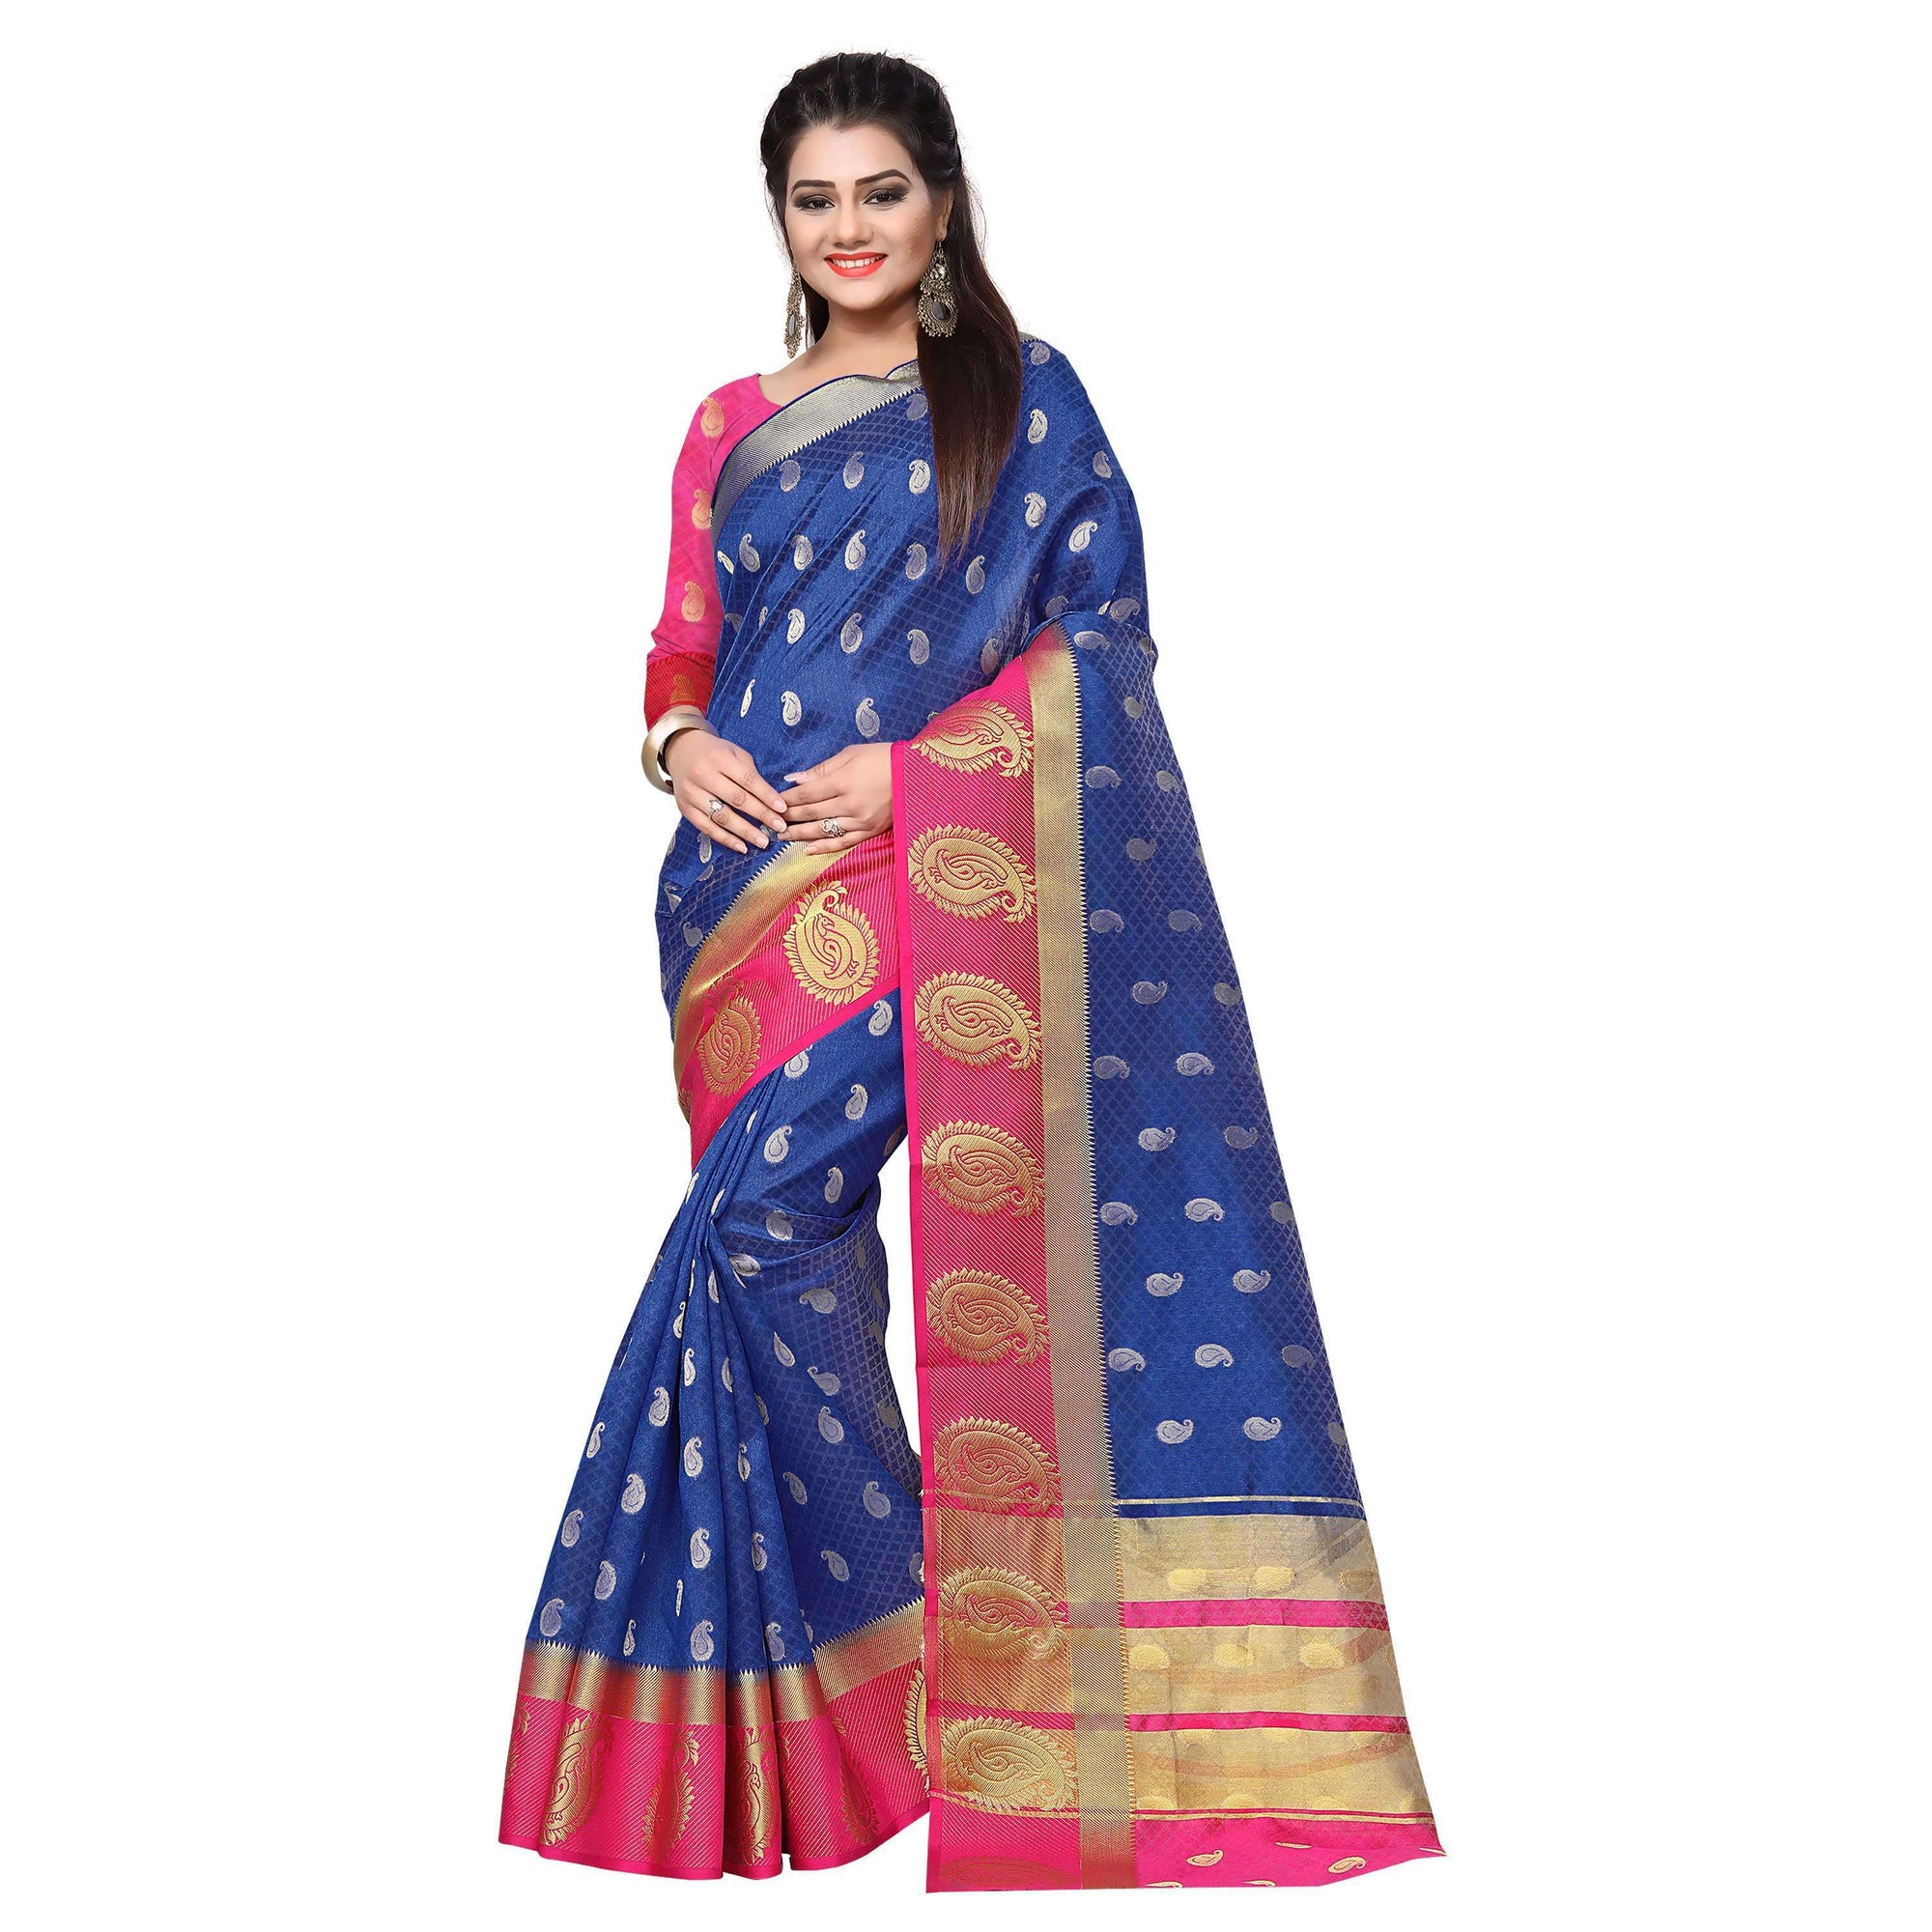 arars kanjivaram art silk saree with blouse saree colour royal blue (328)